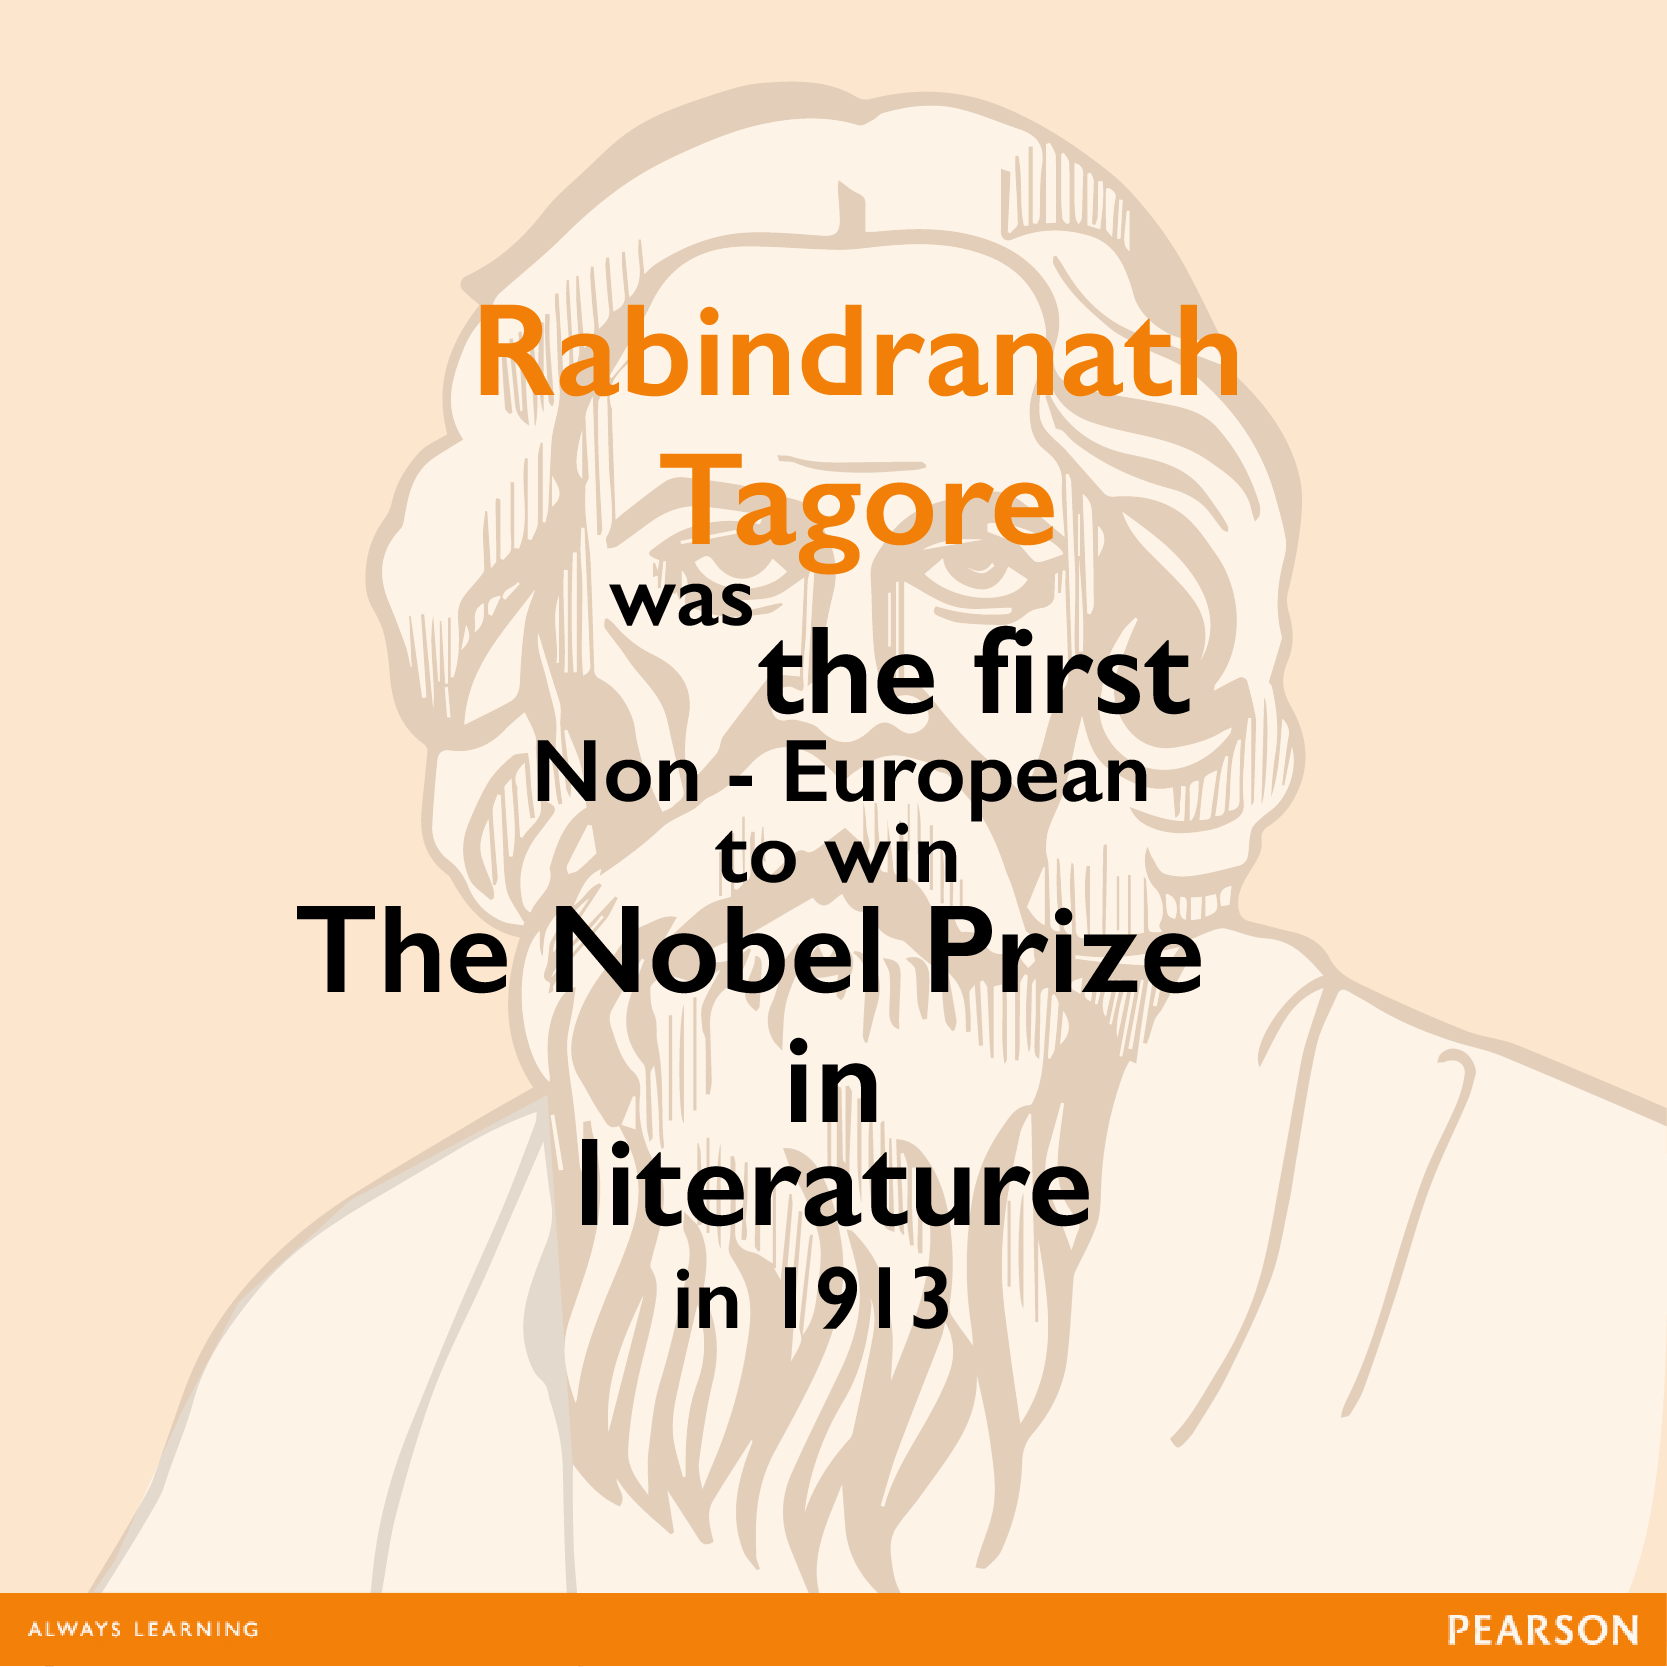 Rabindranath Tagore Also Popularly Known As Gurudev Was India S Most Profound Polymath A P Nobel Prize In Literature Art And Literature Rabindranath Tagore